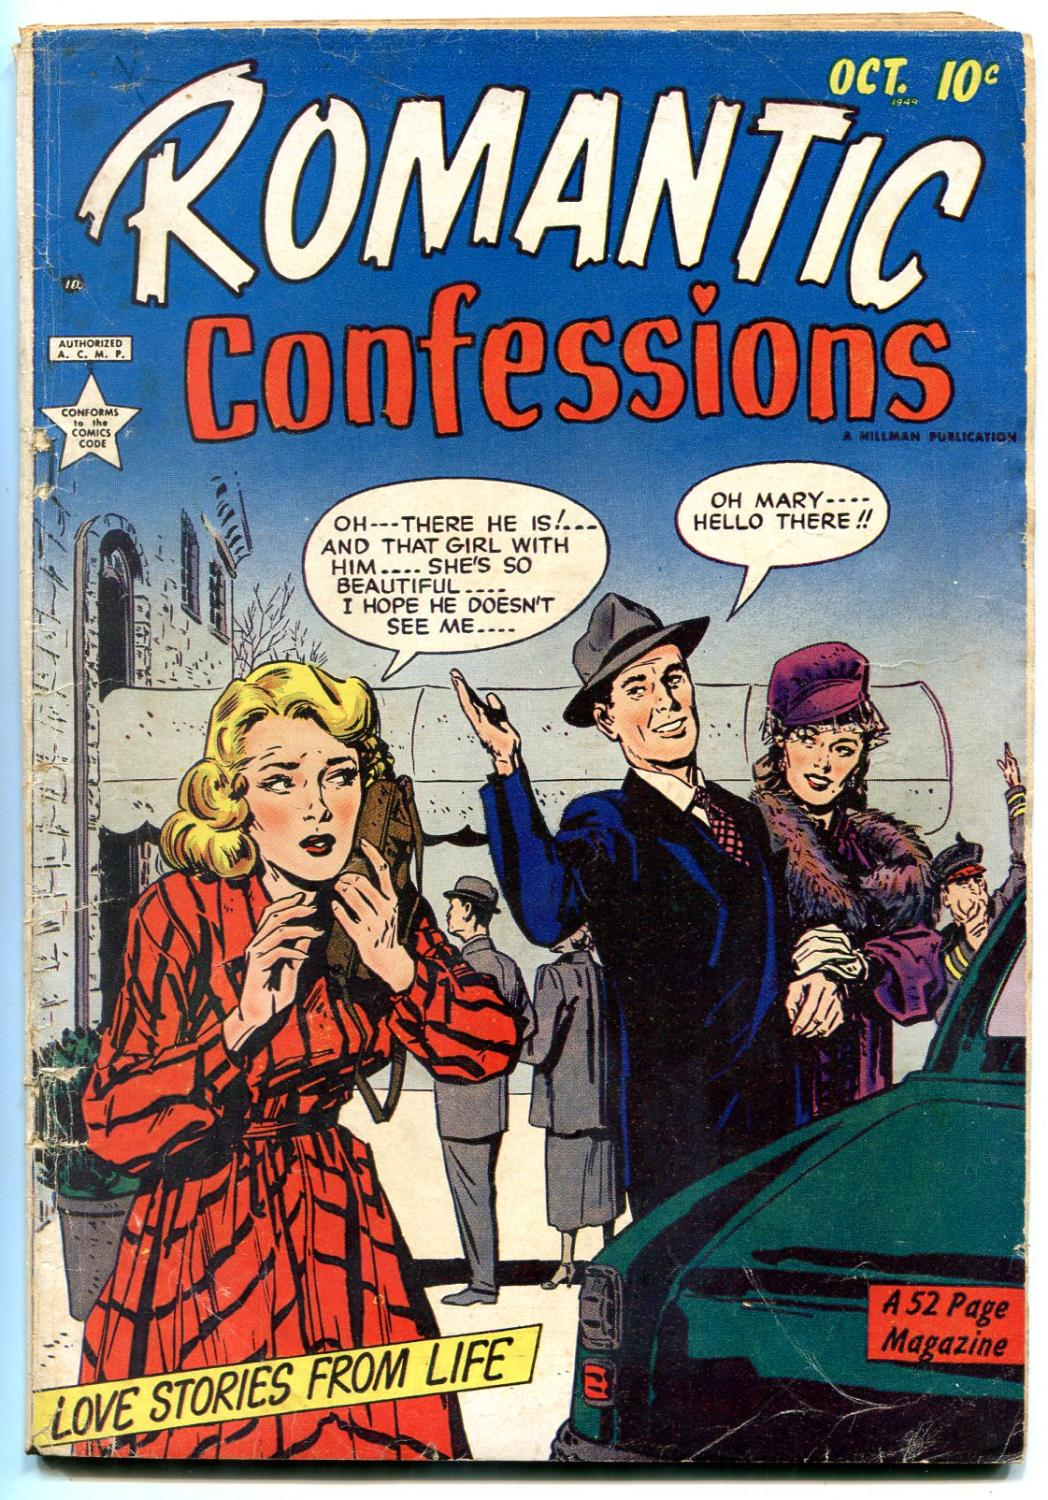 Romantic Confessions #1 1949- golden Age romance comic- lingerie VG Very Good First issue. Al McWilliams art. Bride story, lingerie. Rare. Condition: VG